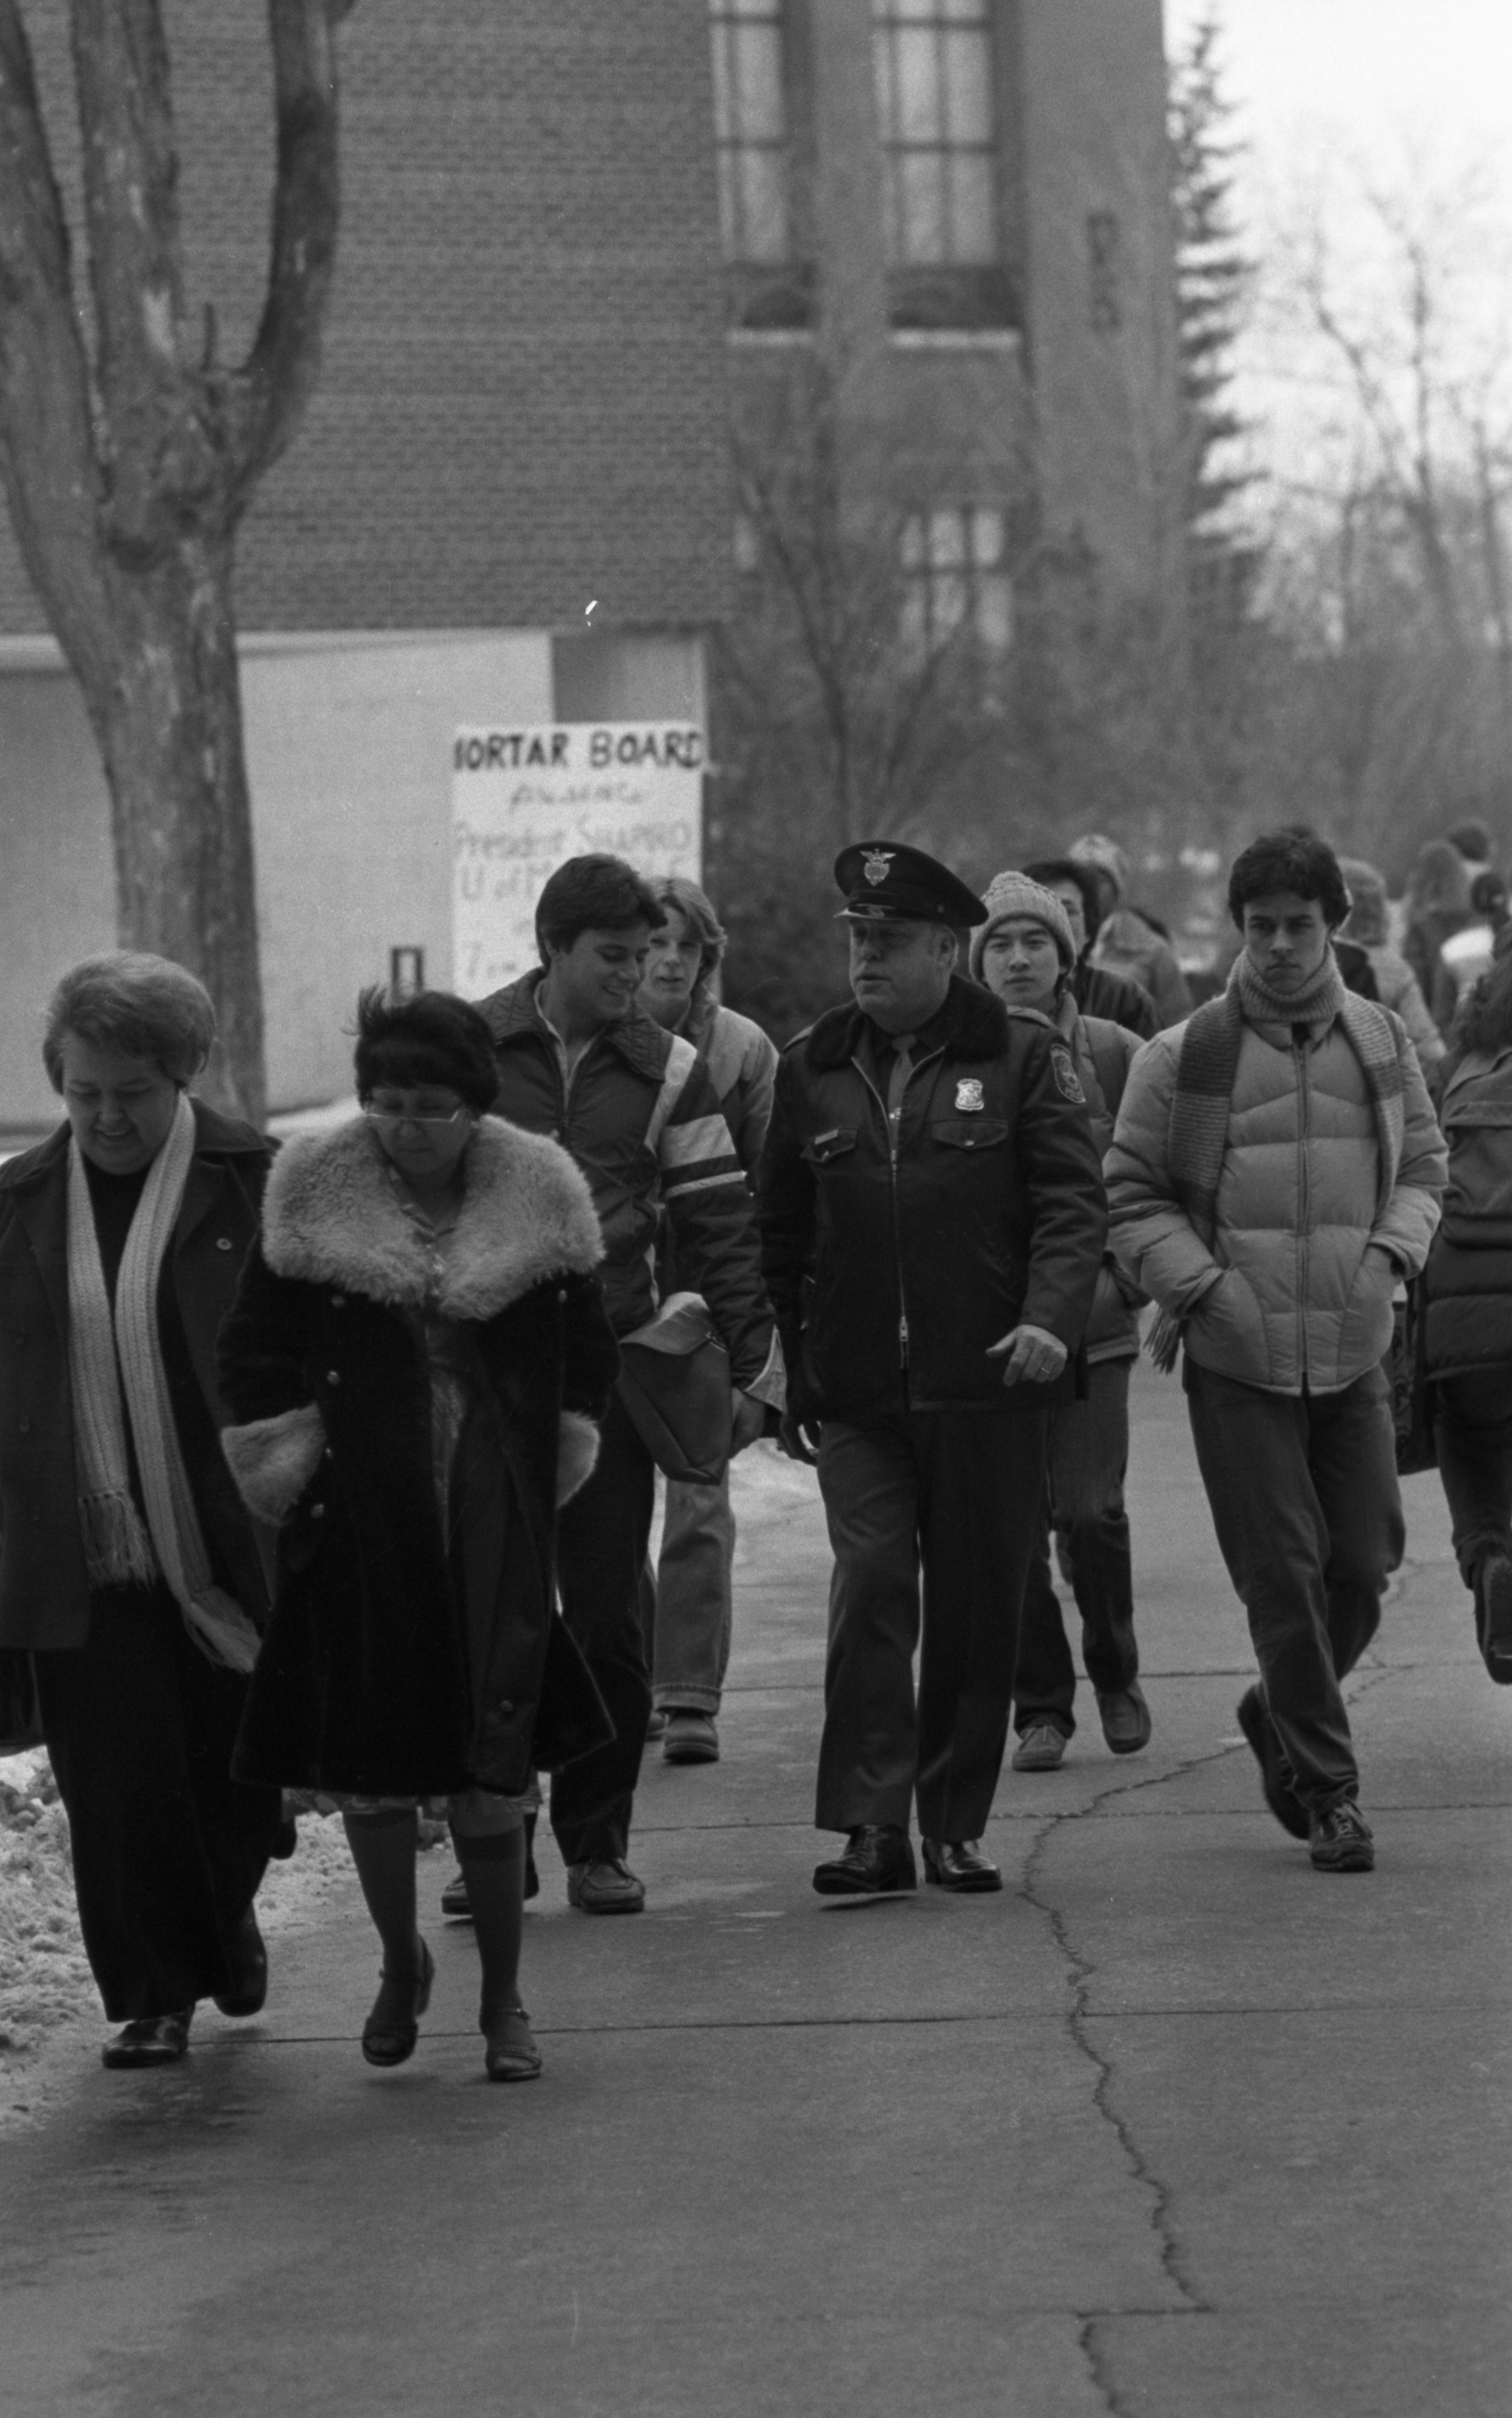 Ann Arbor Police Officer Charles V. Fleming Walks His Last Beat Across University of Michigan Campus, January 1981 image